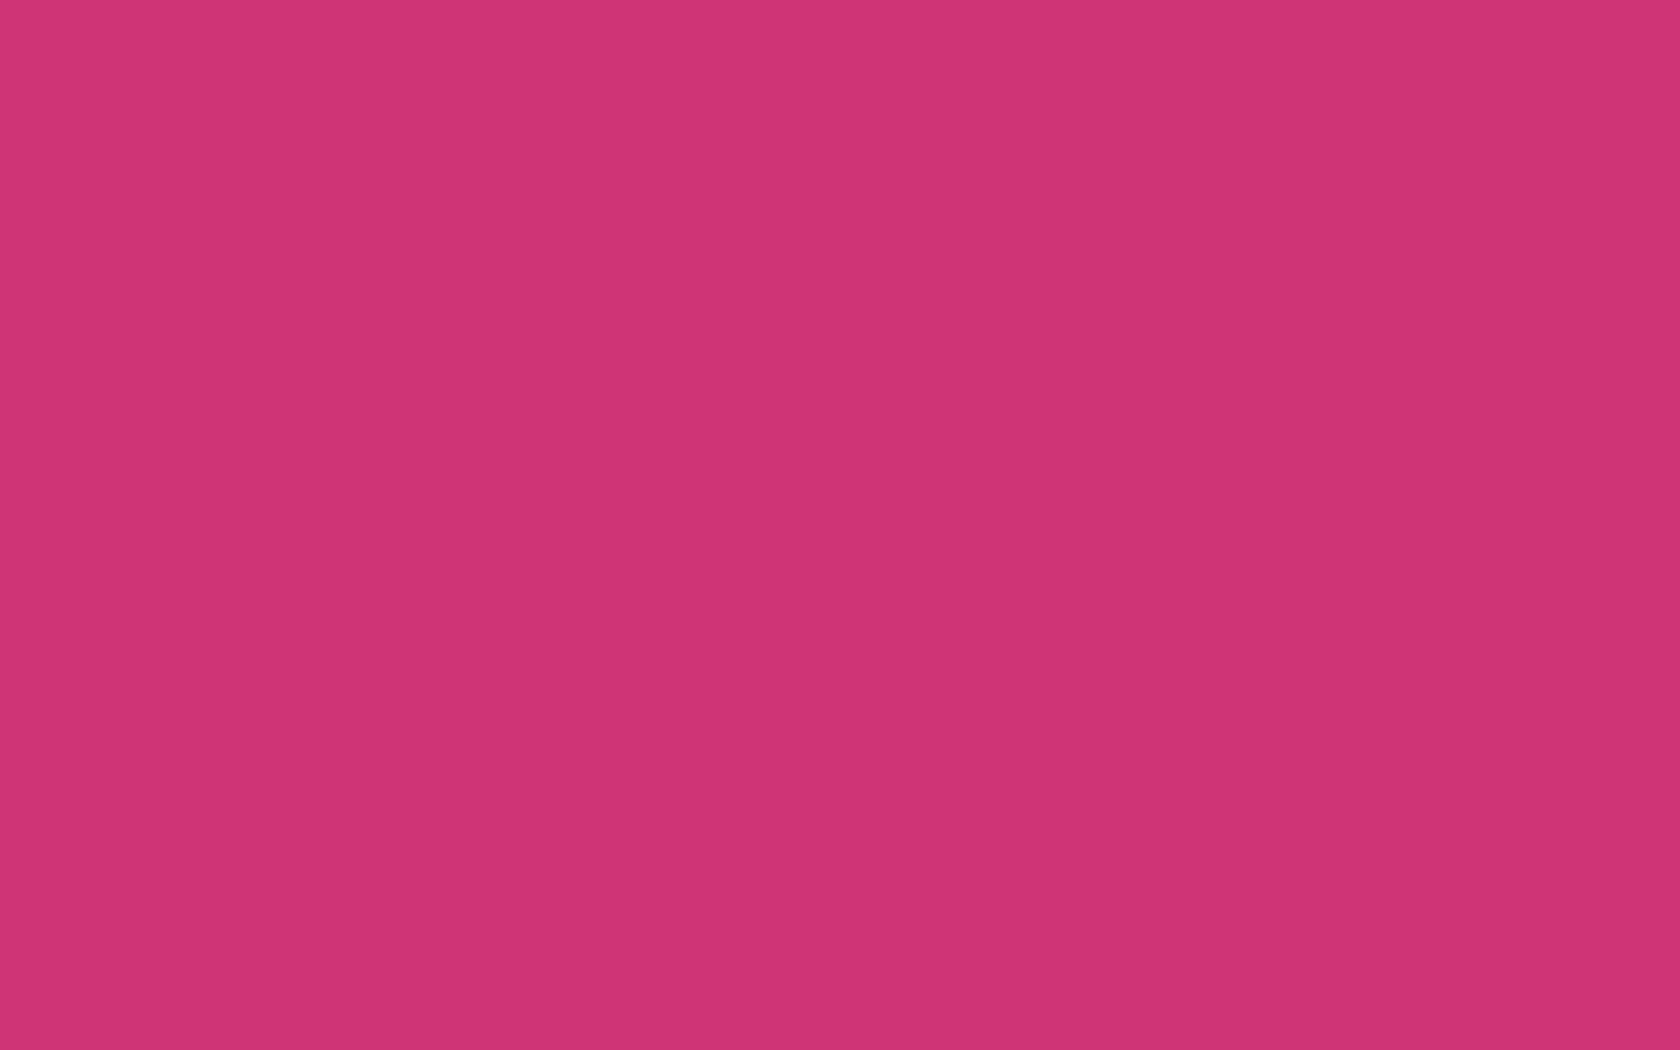 1680x1050 Telemagenta Solid Color Background